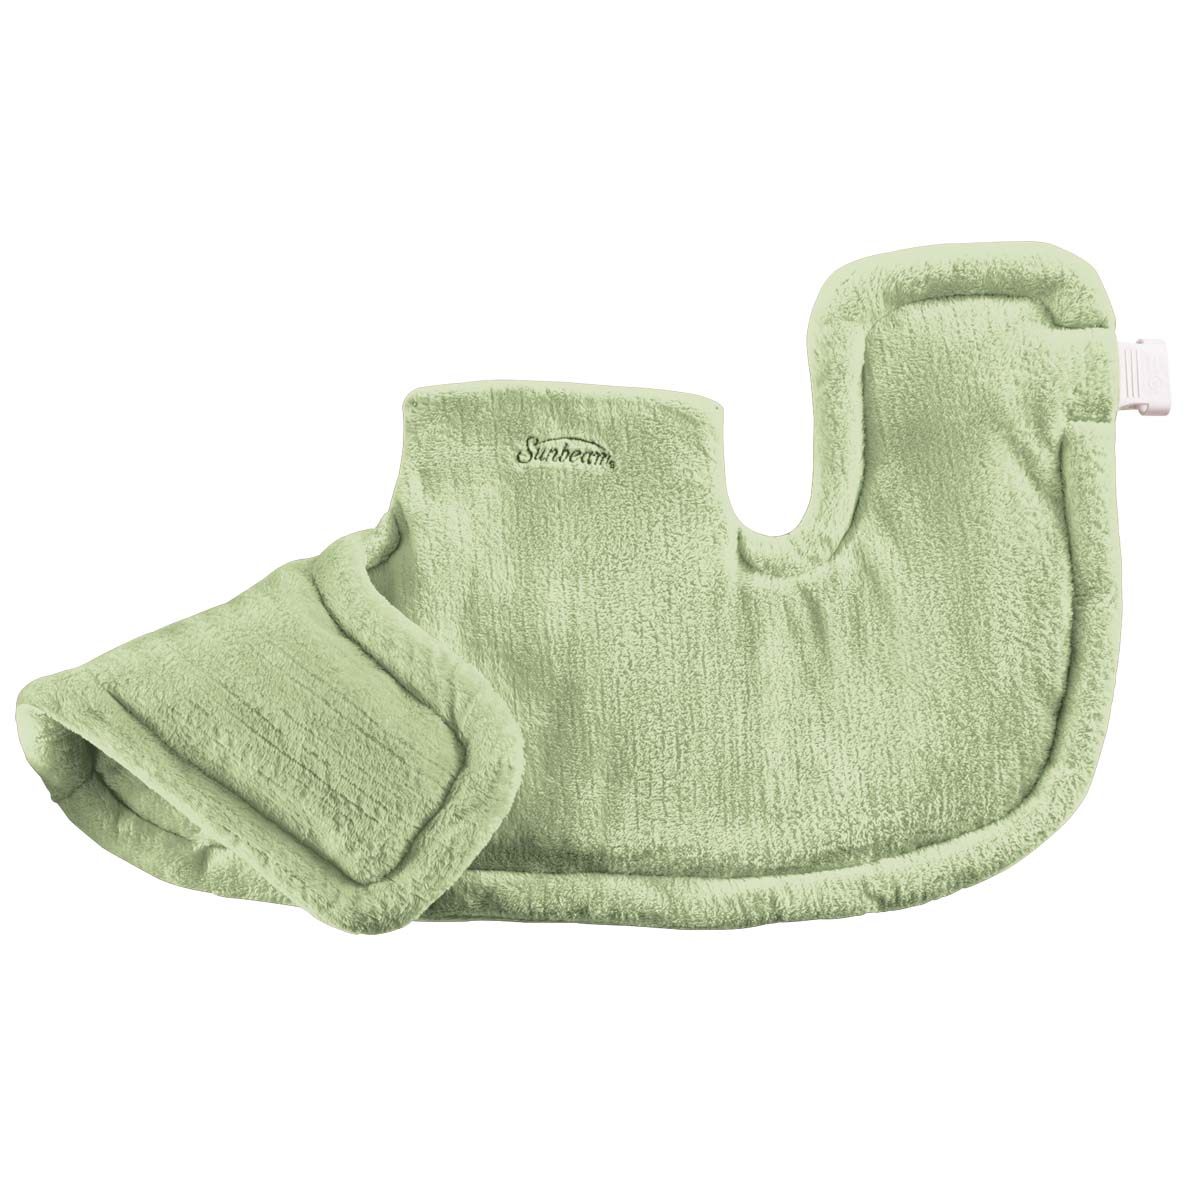 Sunbeam Renue Tension Relieving Heat Therapy Neck and Shoulder Wrap Heating Pad, Spa Green